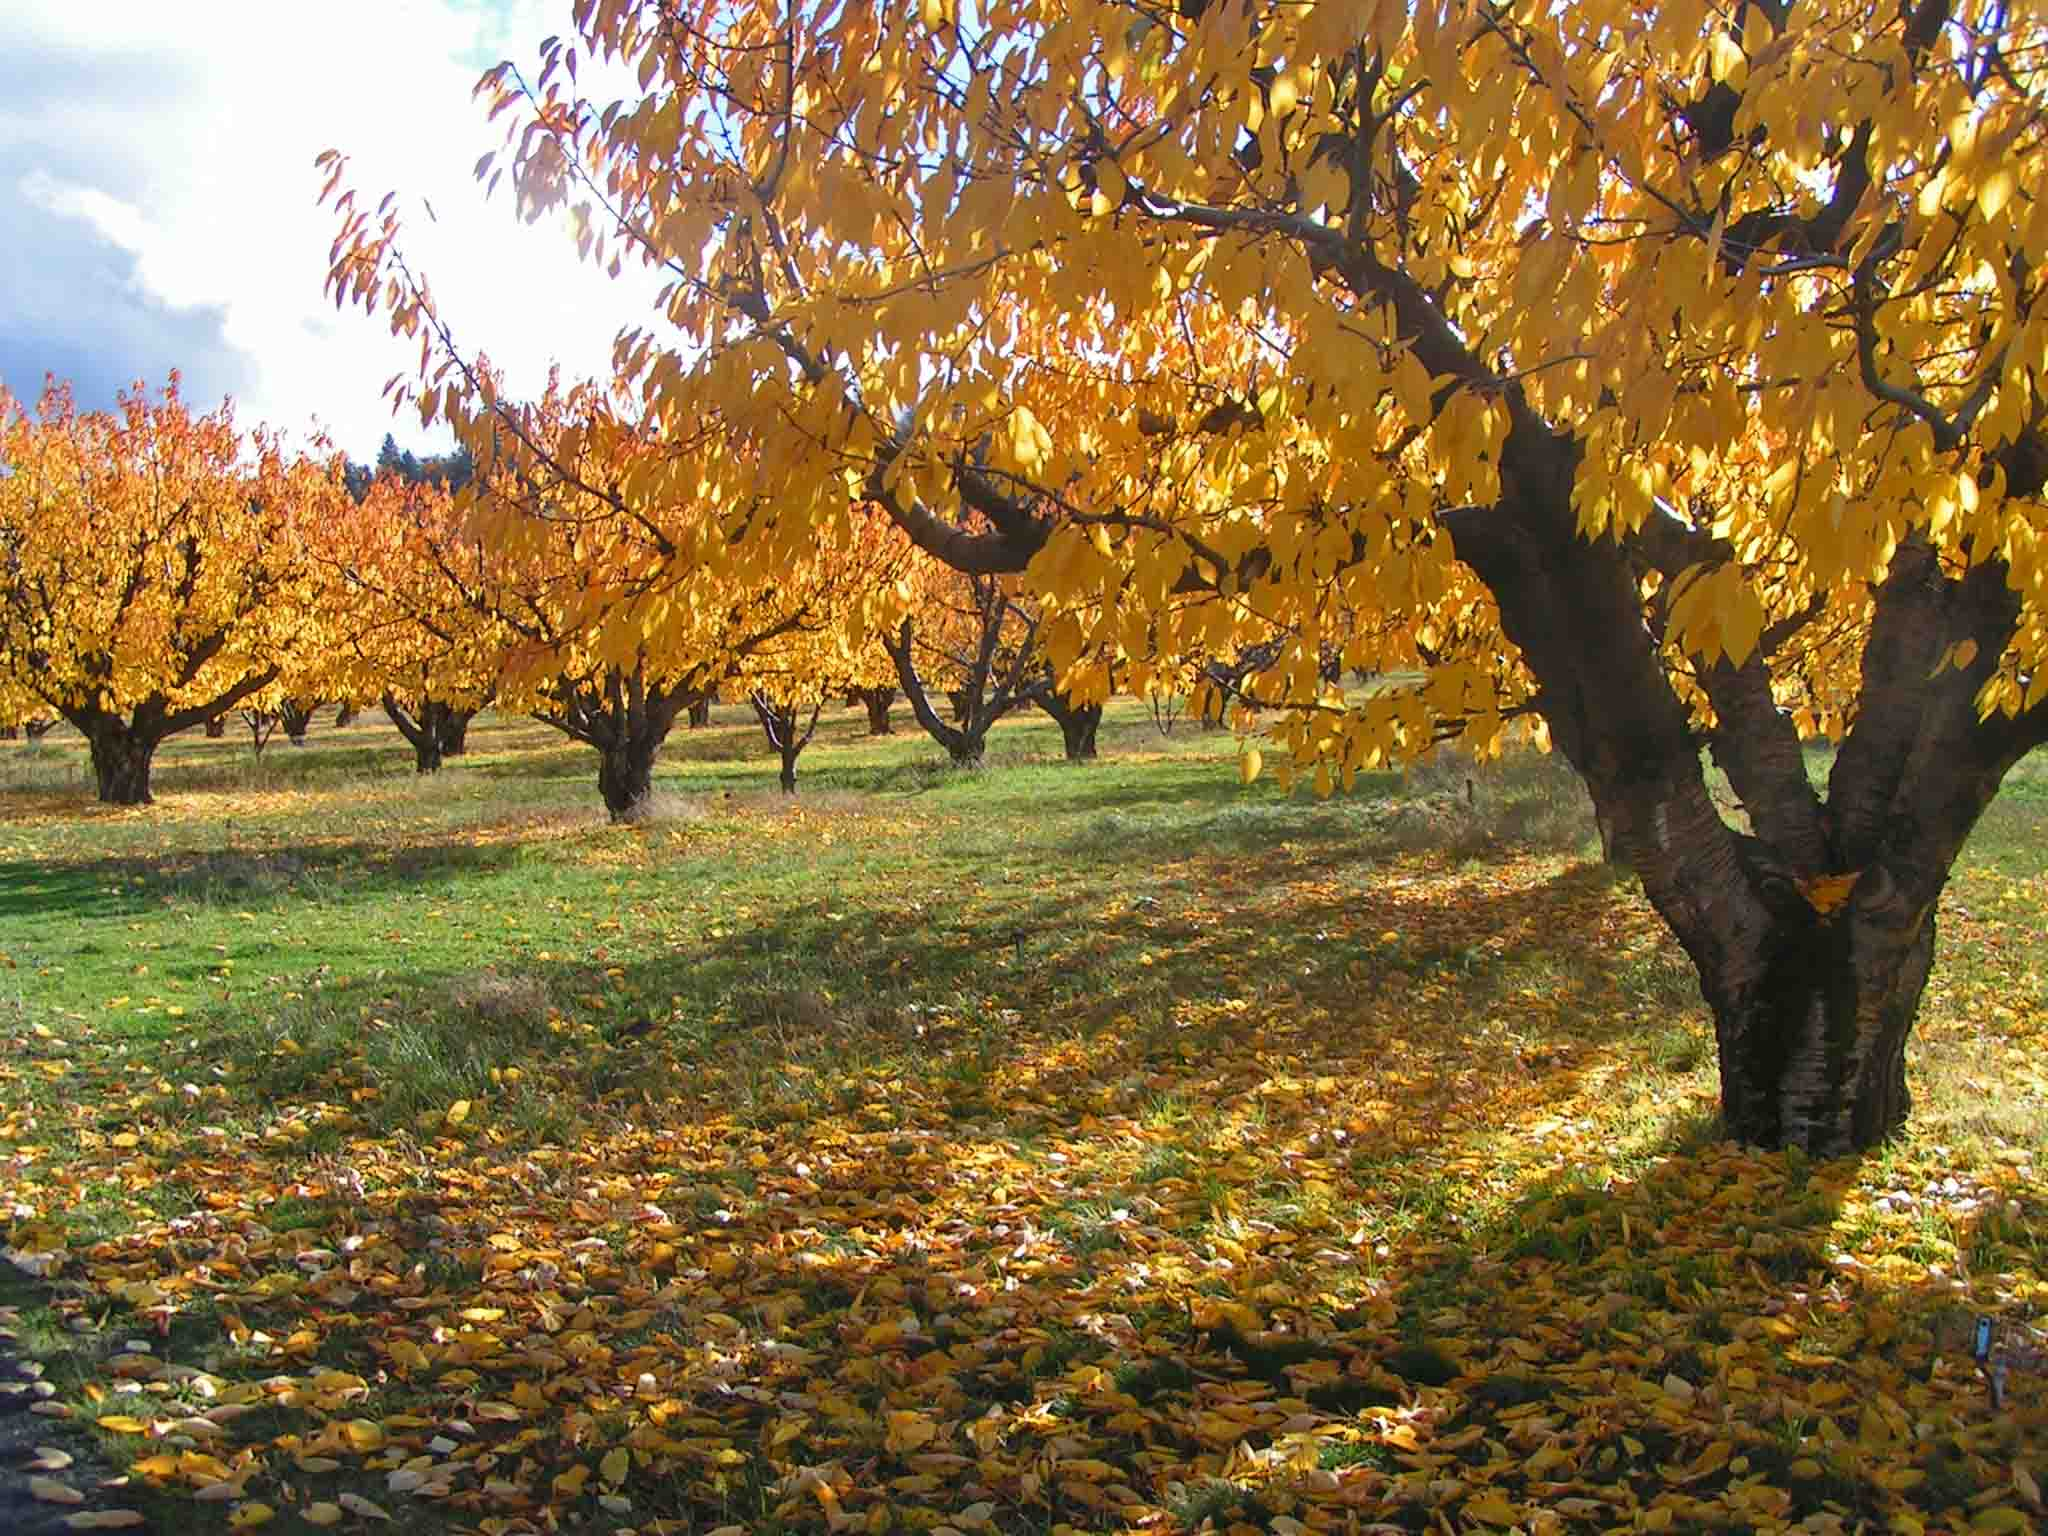 Fall bounty  - the surrender of leaves and the farmers harvest. So much to be thankful for. The orchards around the bend of our road- the Historic Columbia River Highway, near Mosier, OR. Photo: (c) Barb Ayers, DogDiary.org